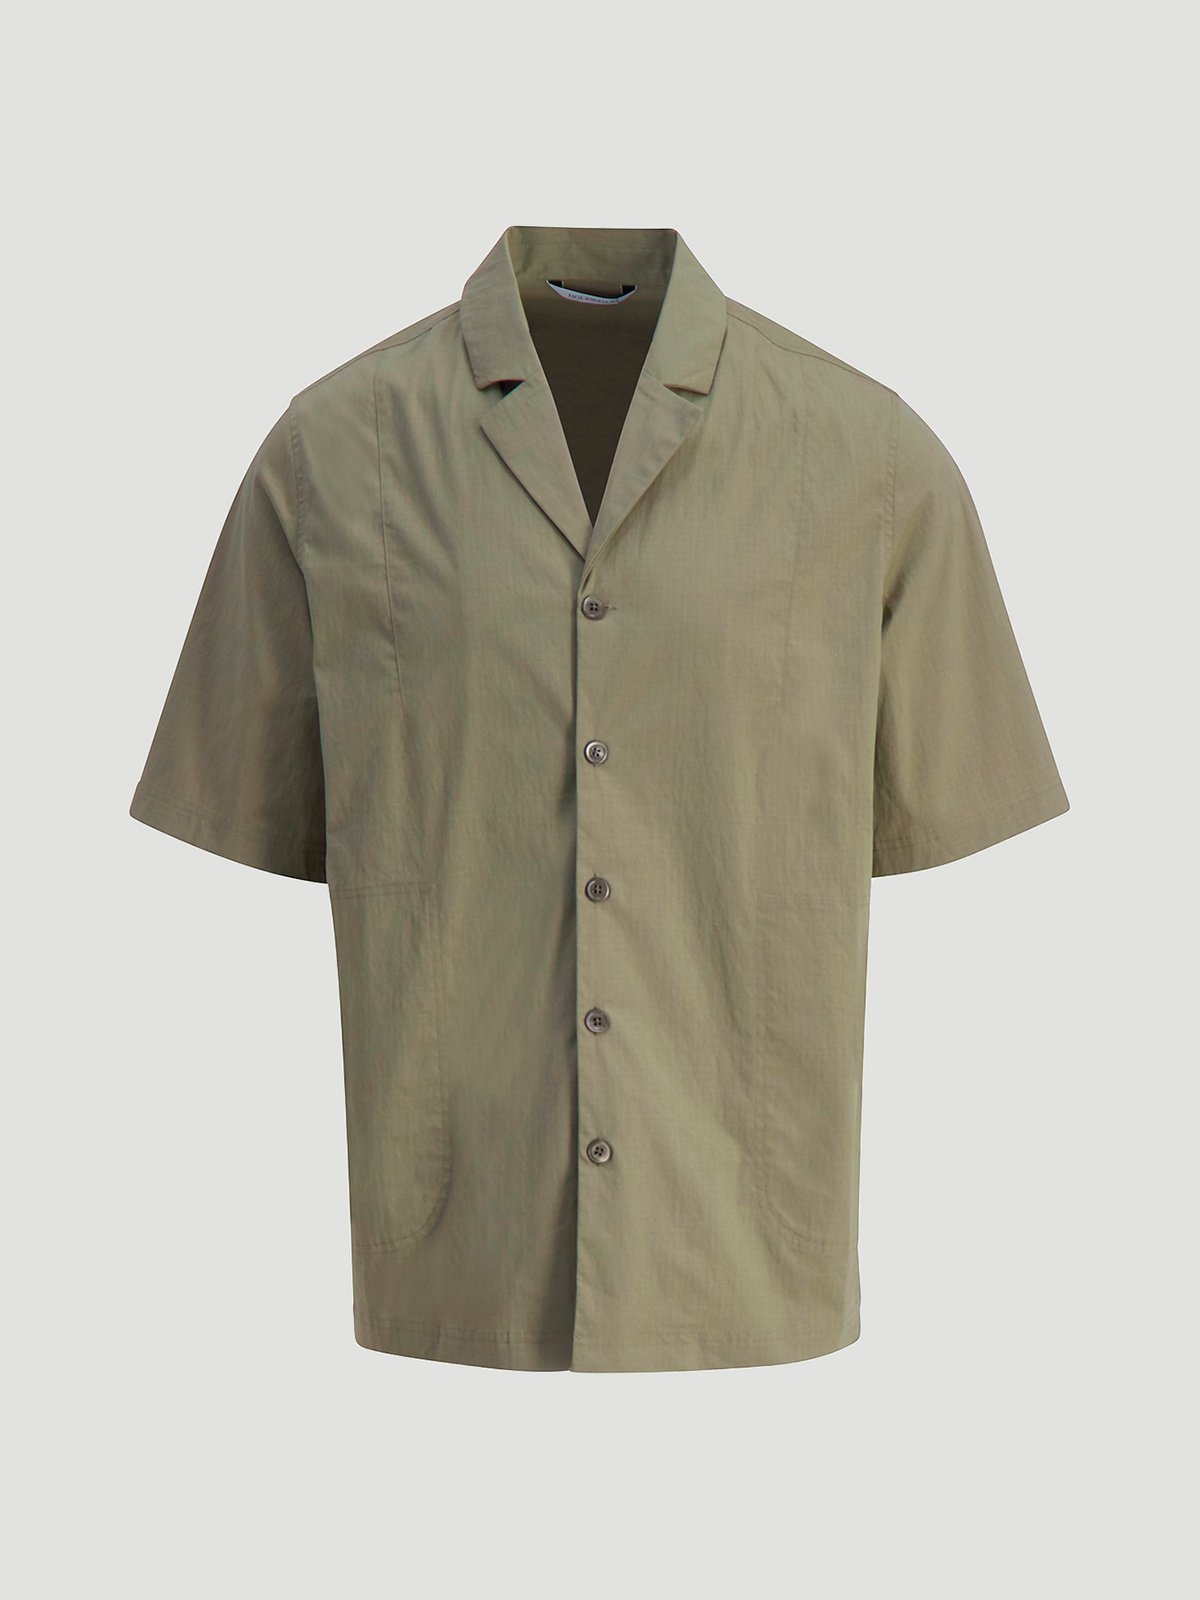 Wilas Shirt Olive Green 5